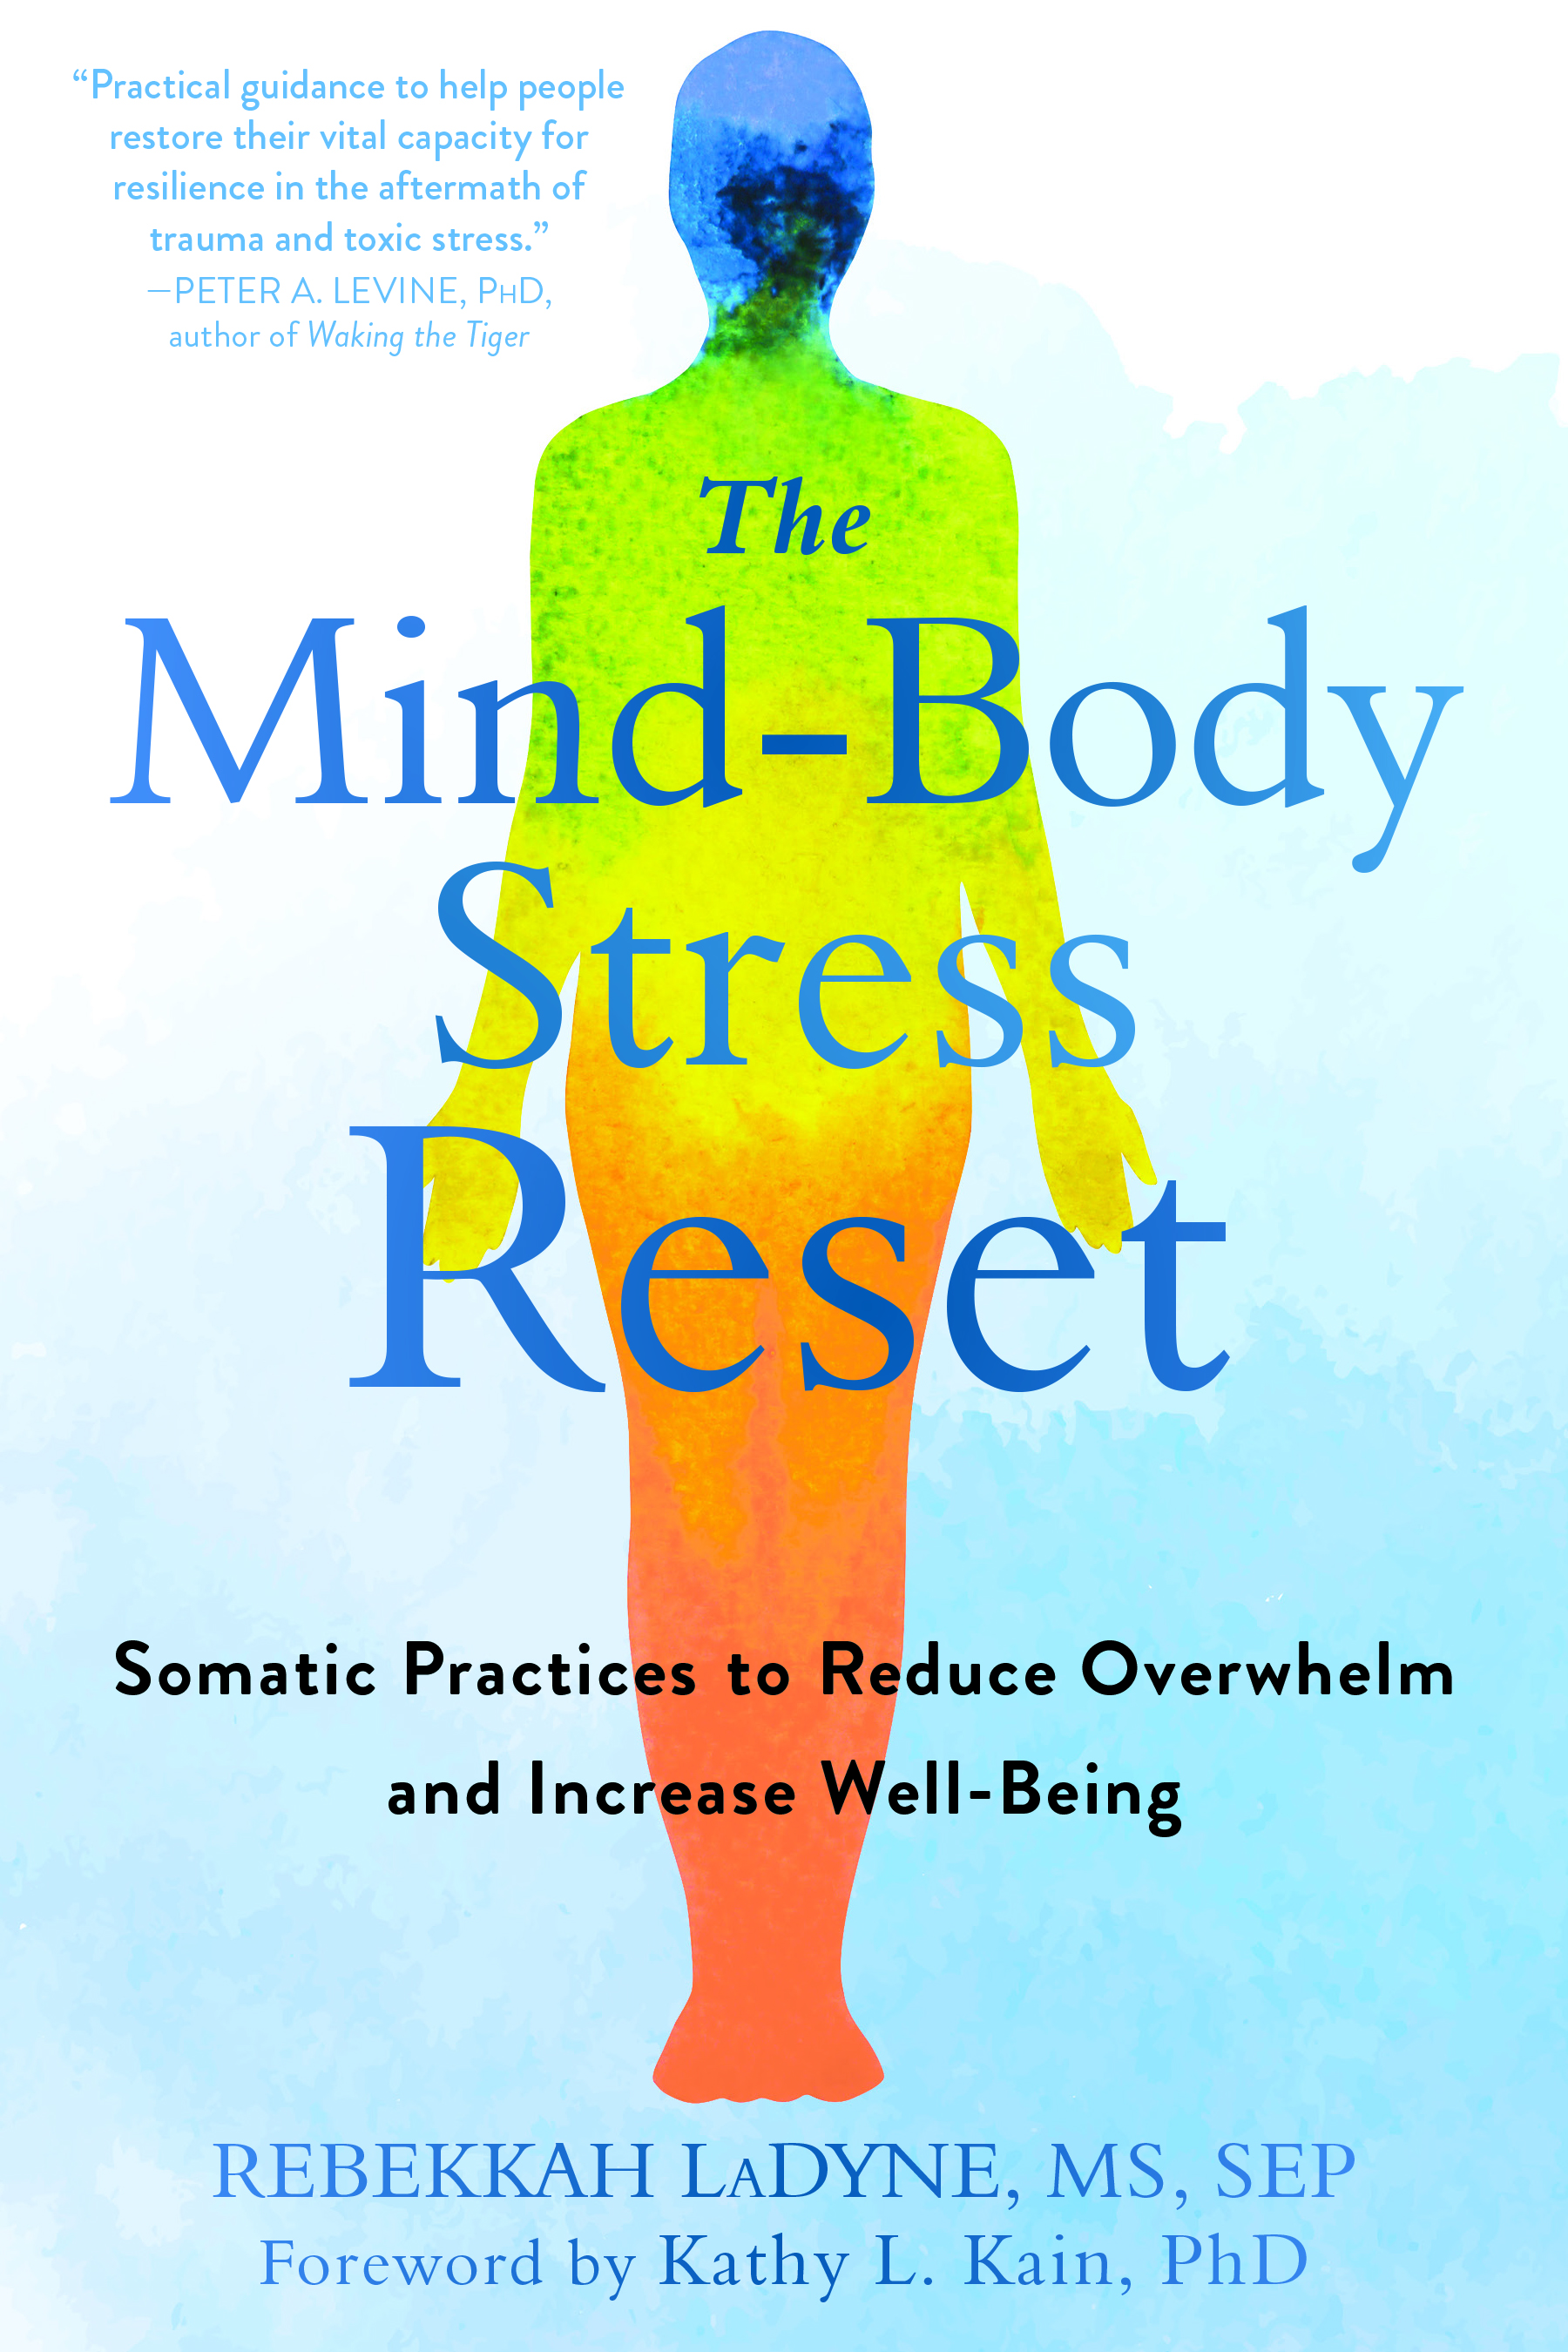 The Mind Body Stress Reset book cover